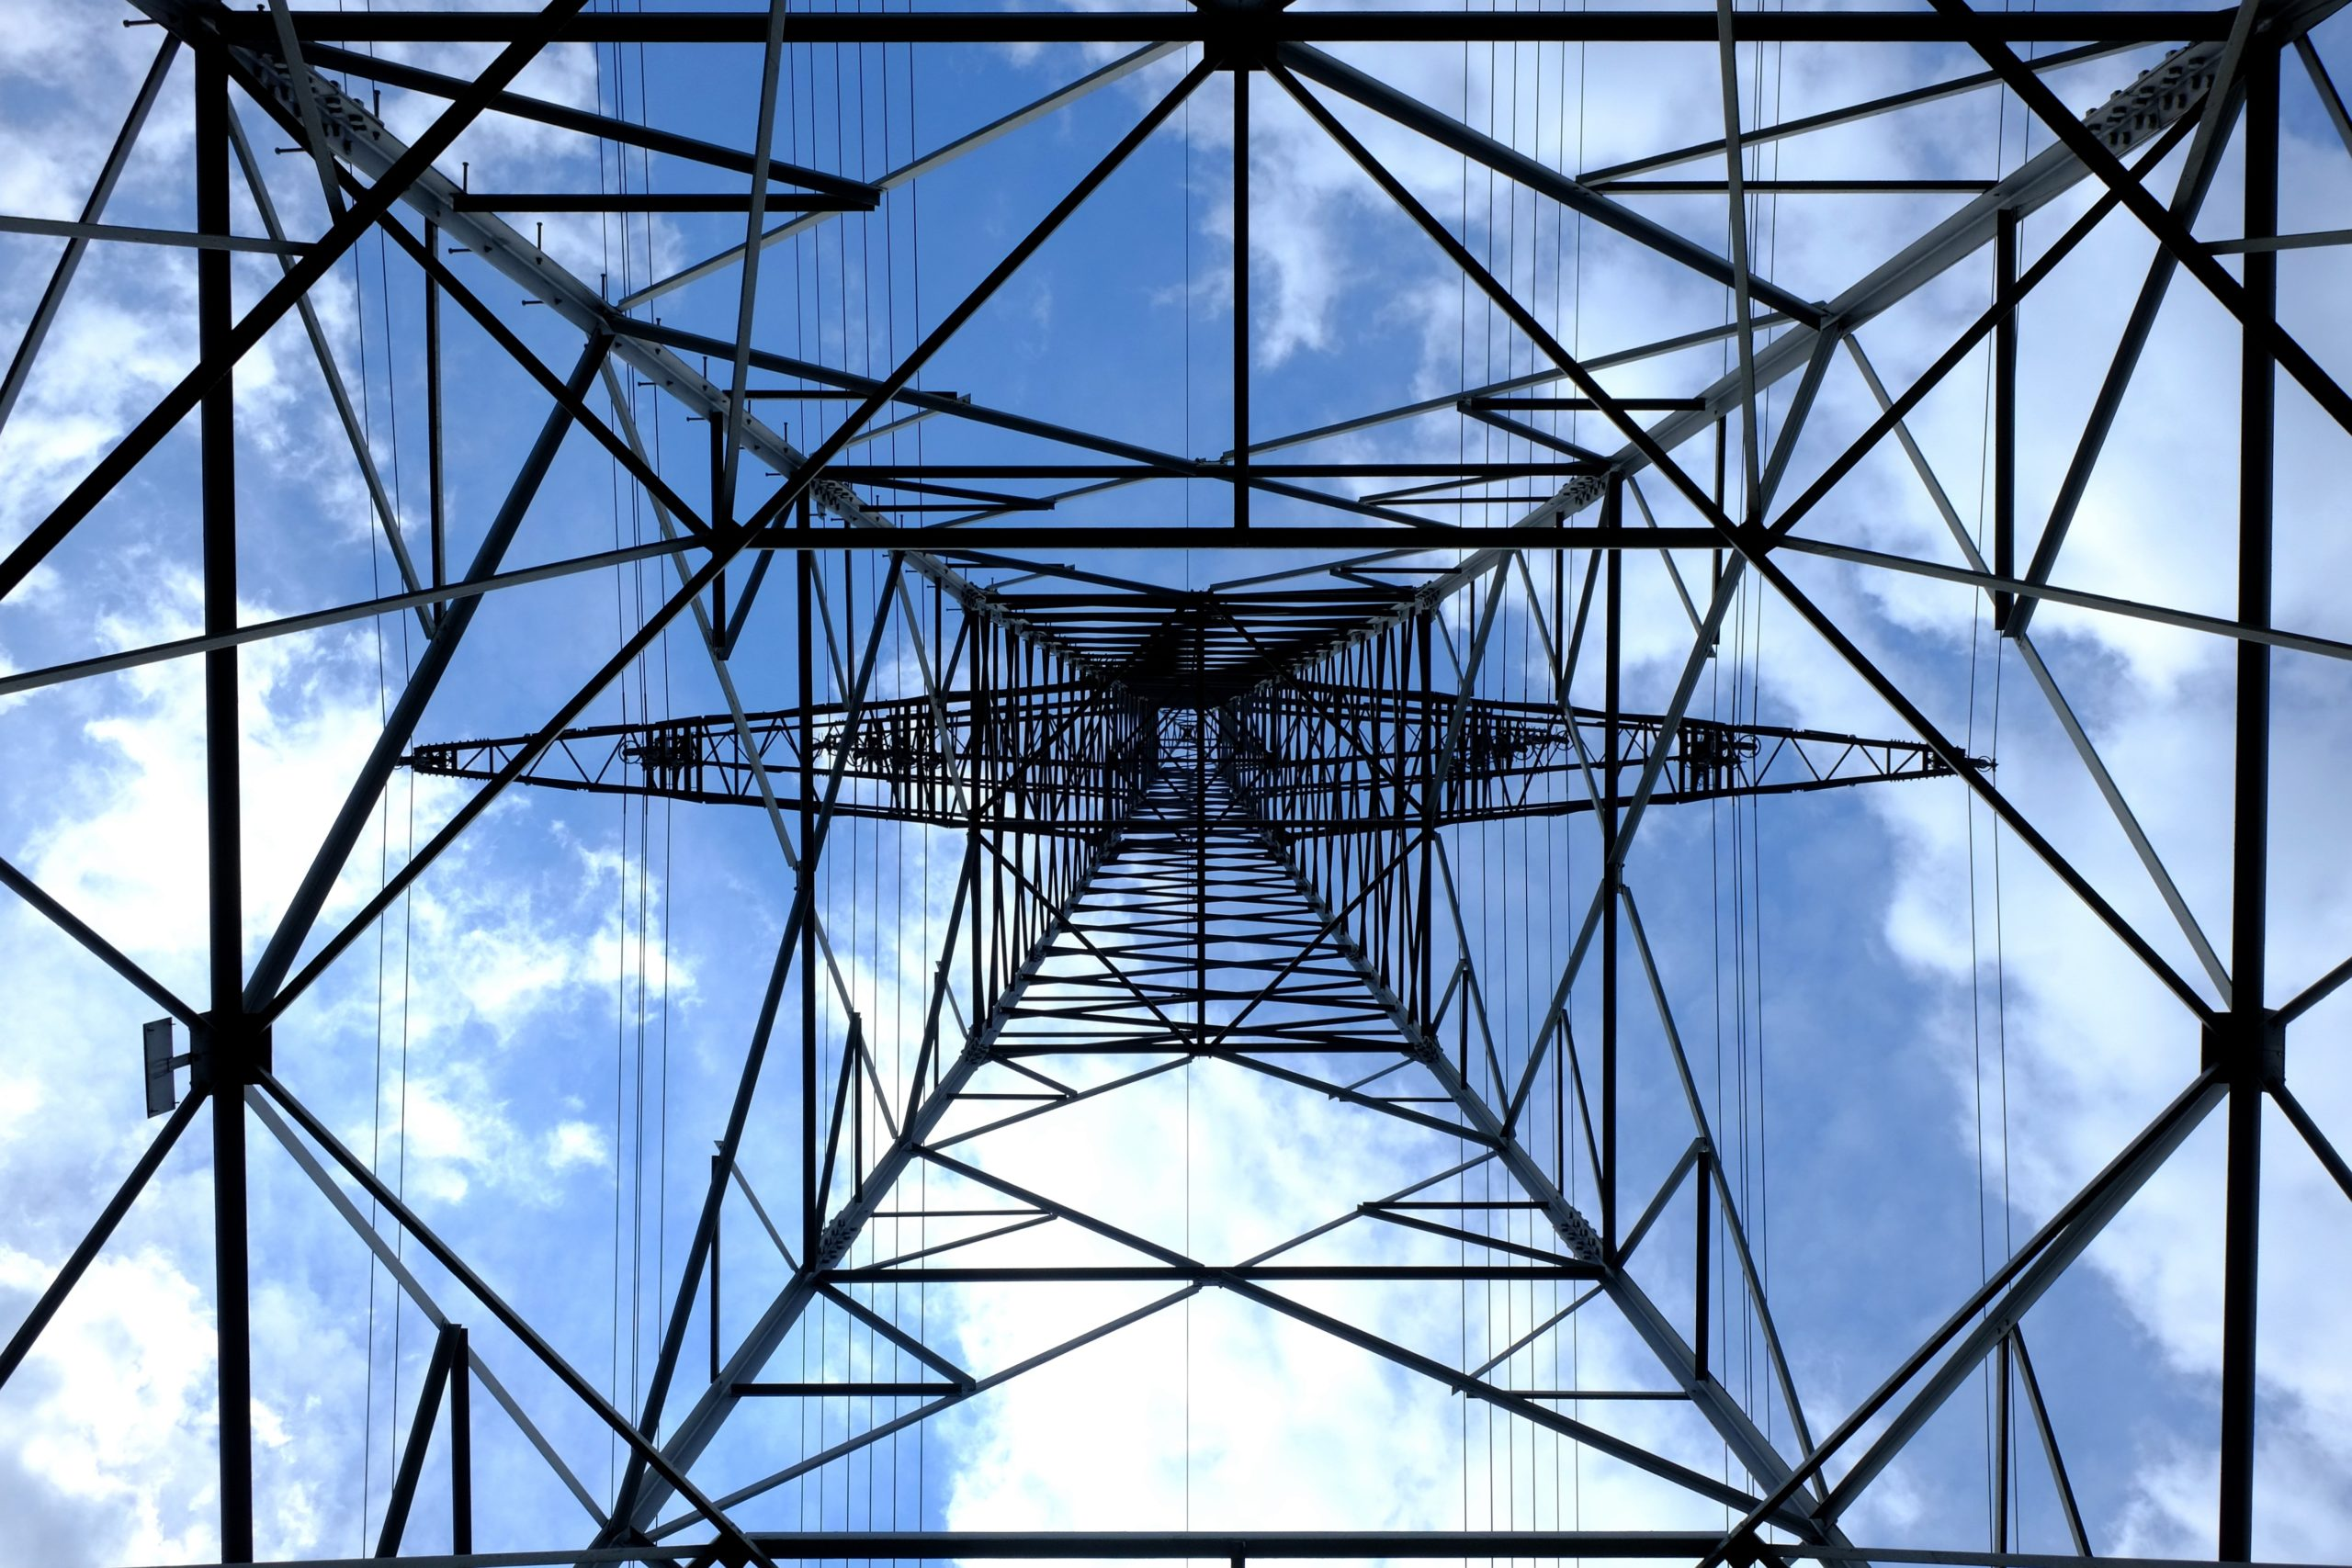 High voltage power lines to be moved underground and light pollution to be minimised in South Oxfordshire